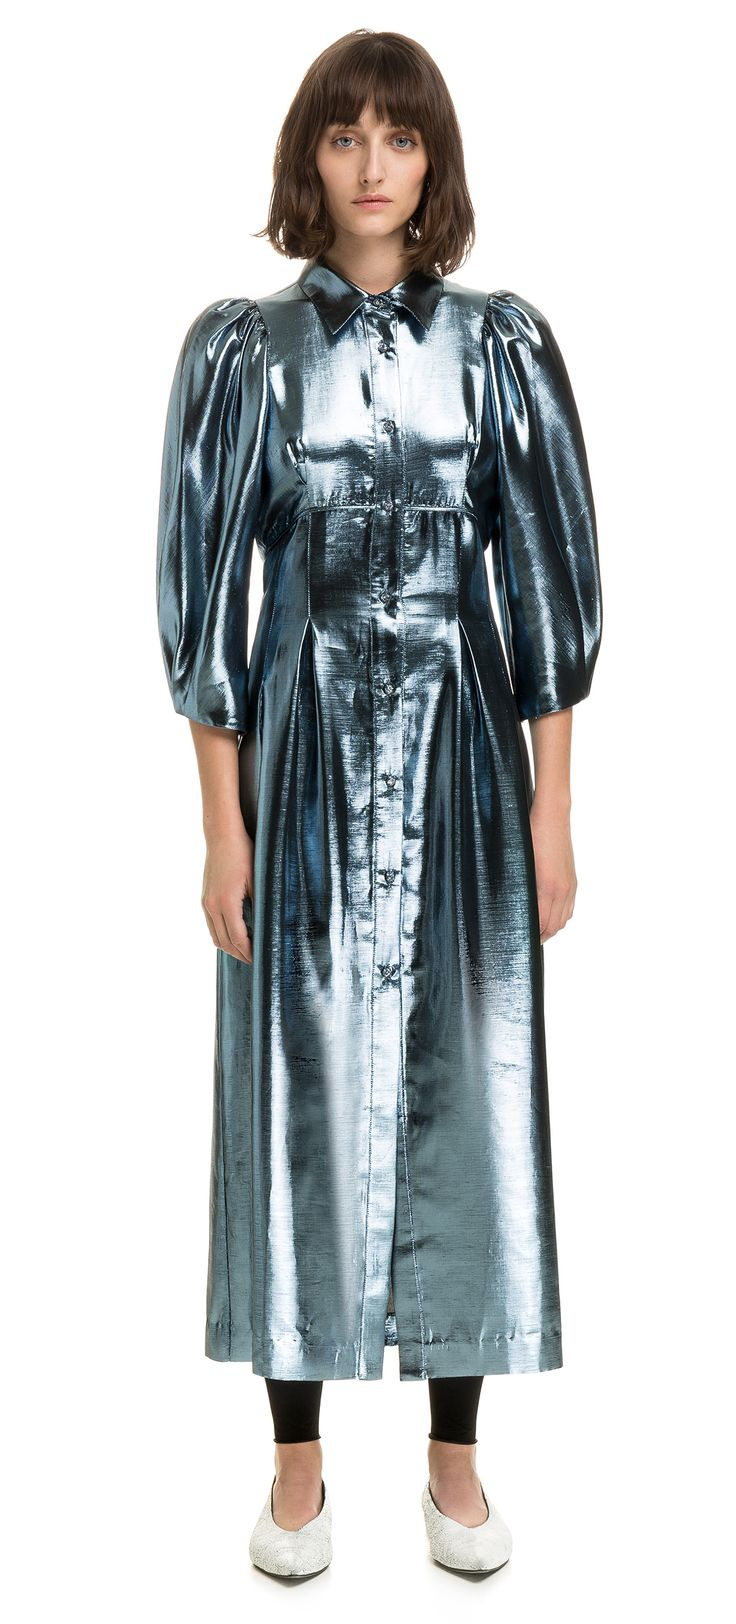 BIMBA Y LOLA metallic blue lurex shirt dress. Model fitted at the waist with flared skirt, shirt collar, pleated shoulders and wide, elbow-length asymmetrical sleeves. Front buttoning and midi length.   Detail  Standard fit Shirt collar Three-quarter leng